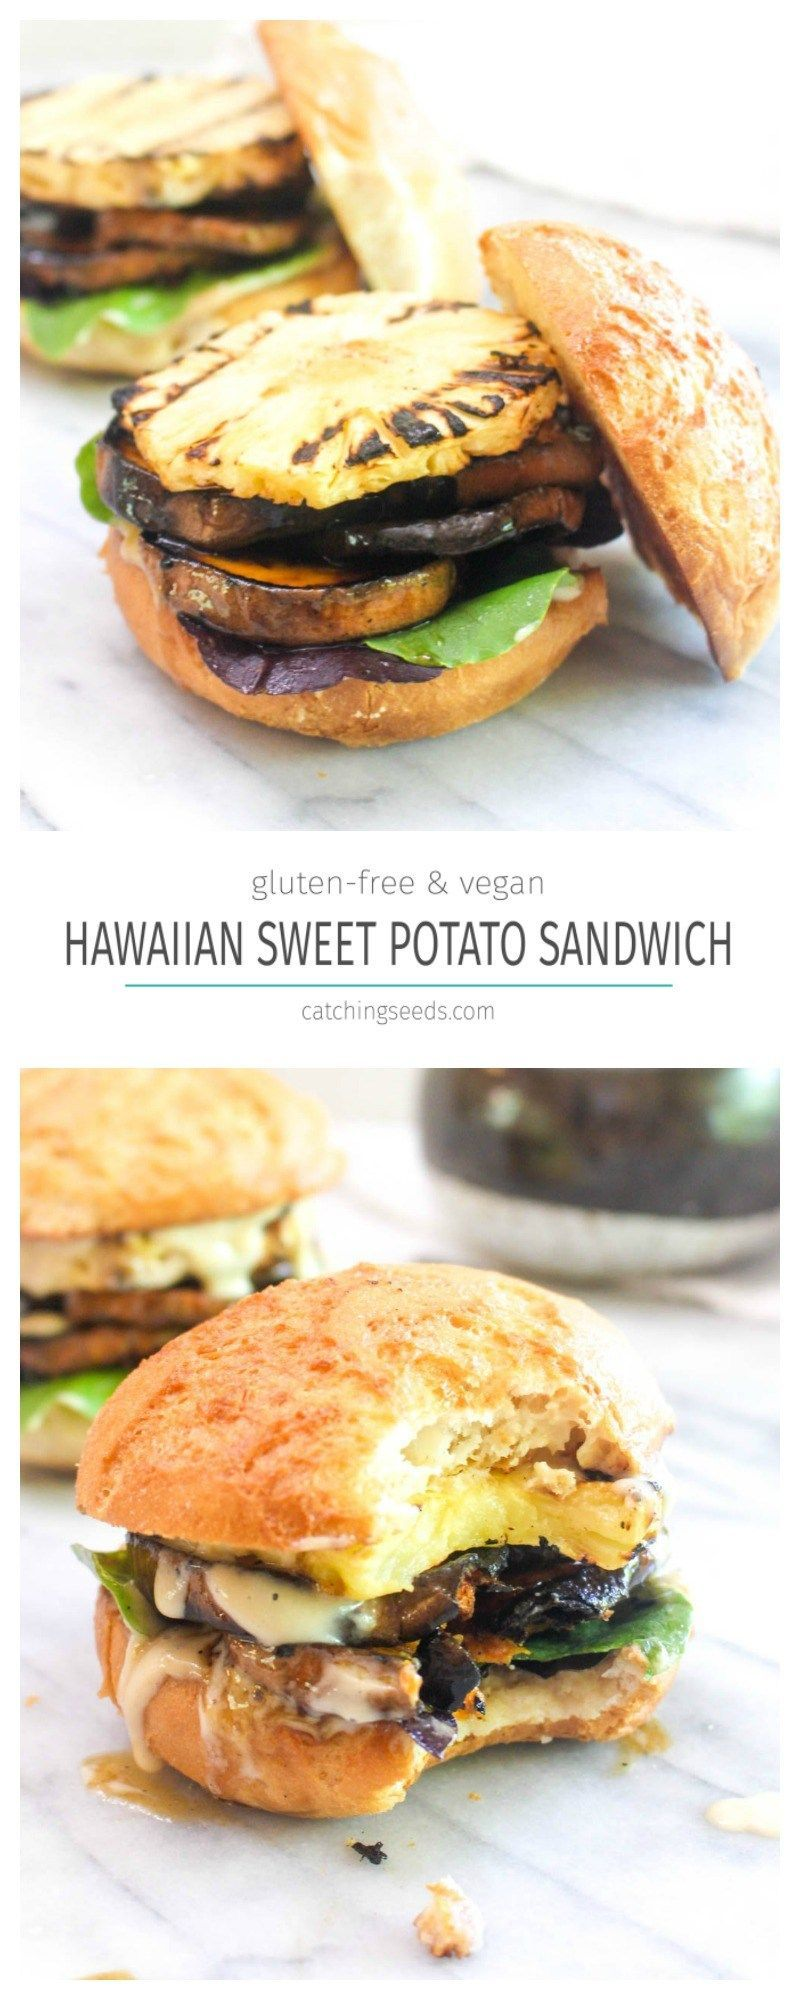 Sweet Potato Sandwich This Hawaiian Sweet Potato Sandwich is a healthy summer barbeque recipe! This vegan sandwich is bursting with flavor thanks to two sauces!   This Hawaiian Sweet Potato Sandwich is a healthy summer barbeque recipe! This vegan sandwich is bursting with flavor thanks to two sauces!  